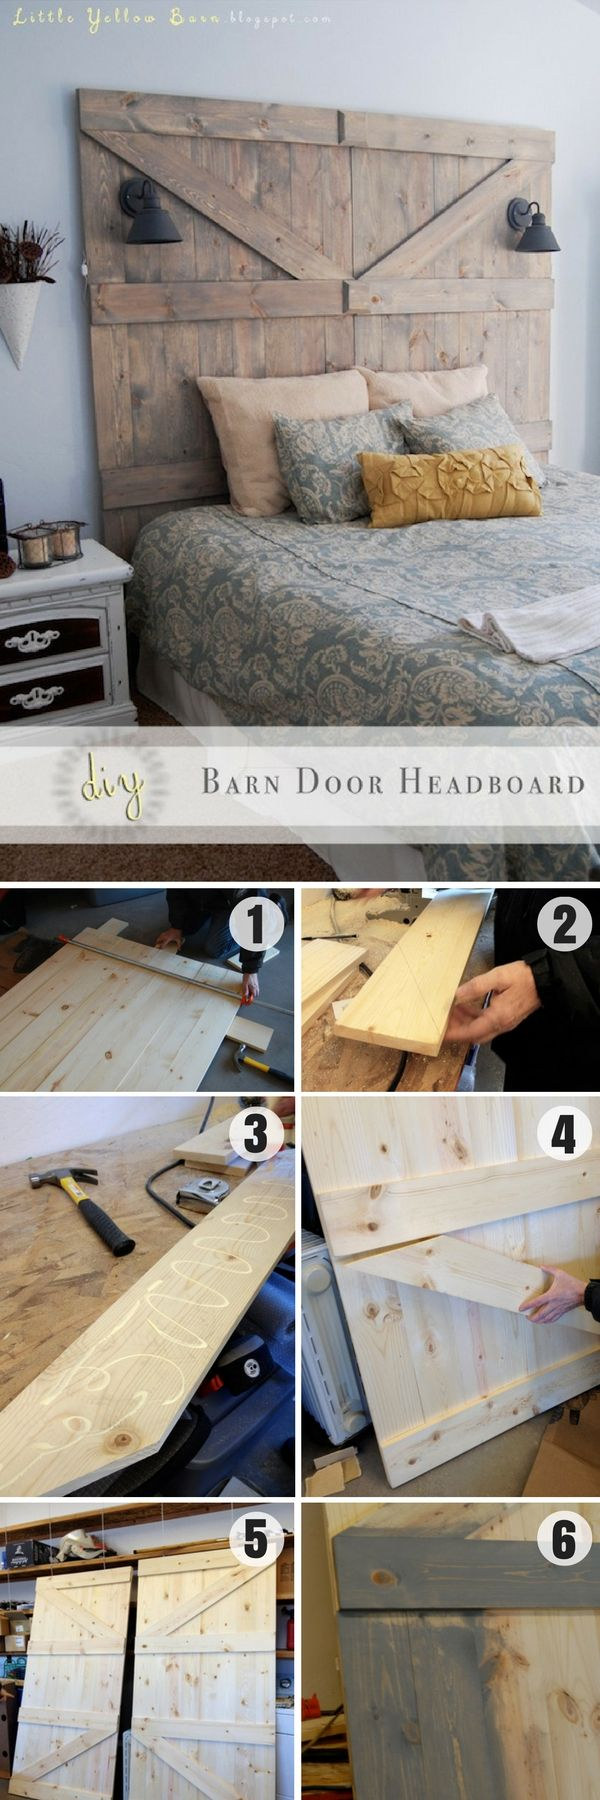 Check out this easy idea on how to build a #DIY barn door headboard for bedroom #homedecor #budget #project #wood @istandarddesign